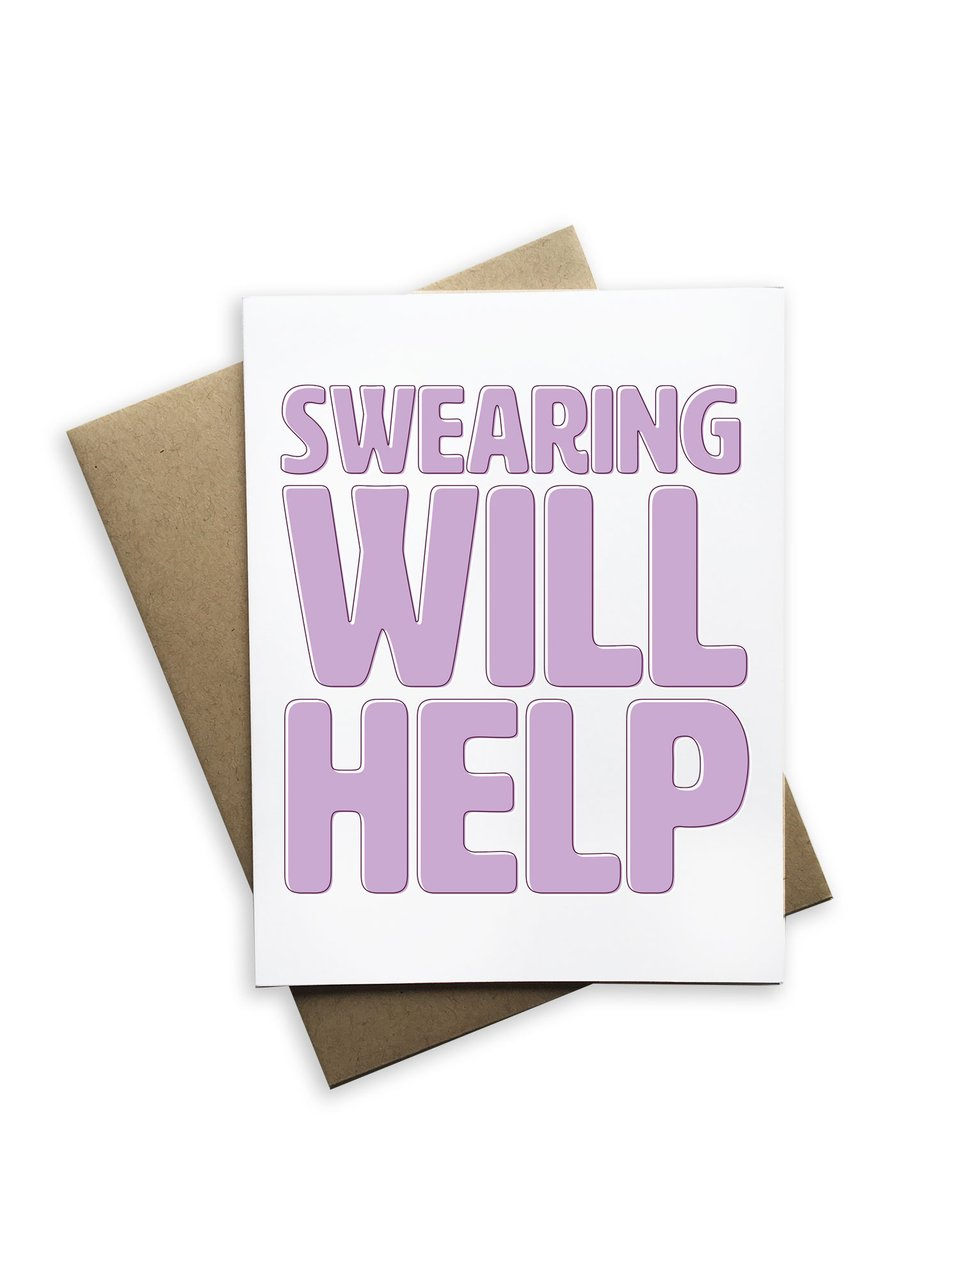 SWEARING HELPS CANCER CARD